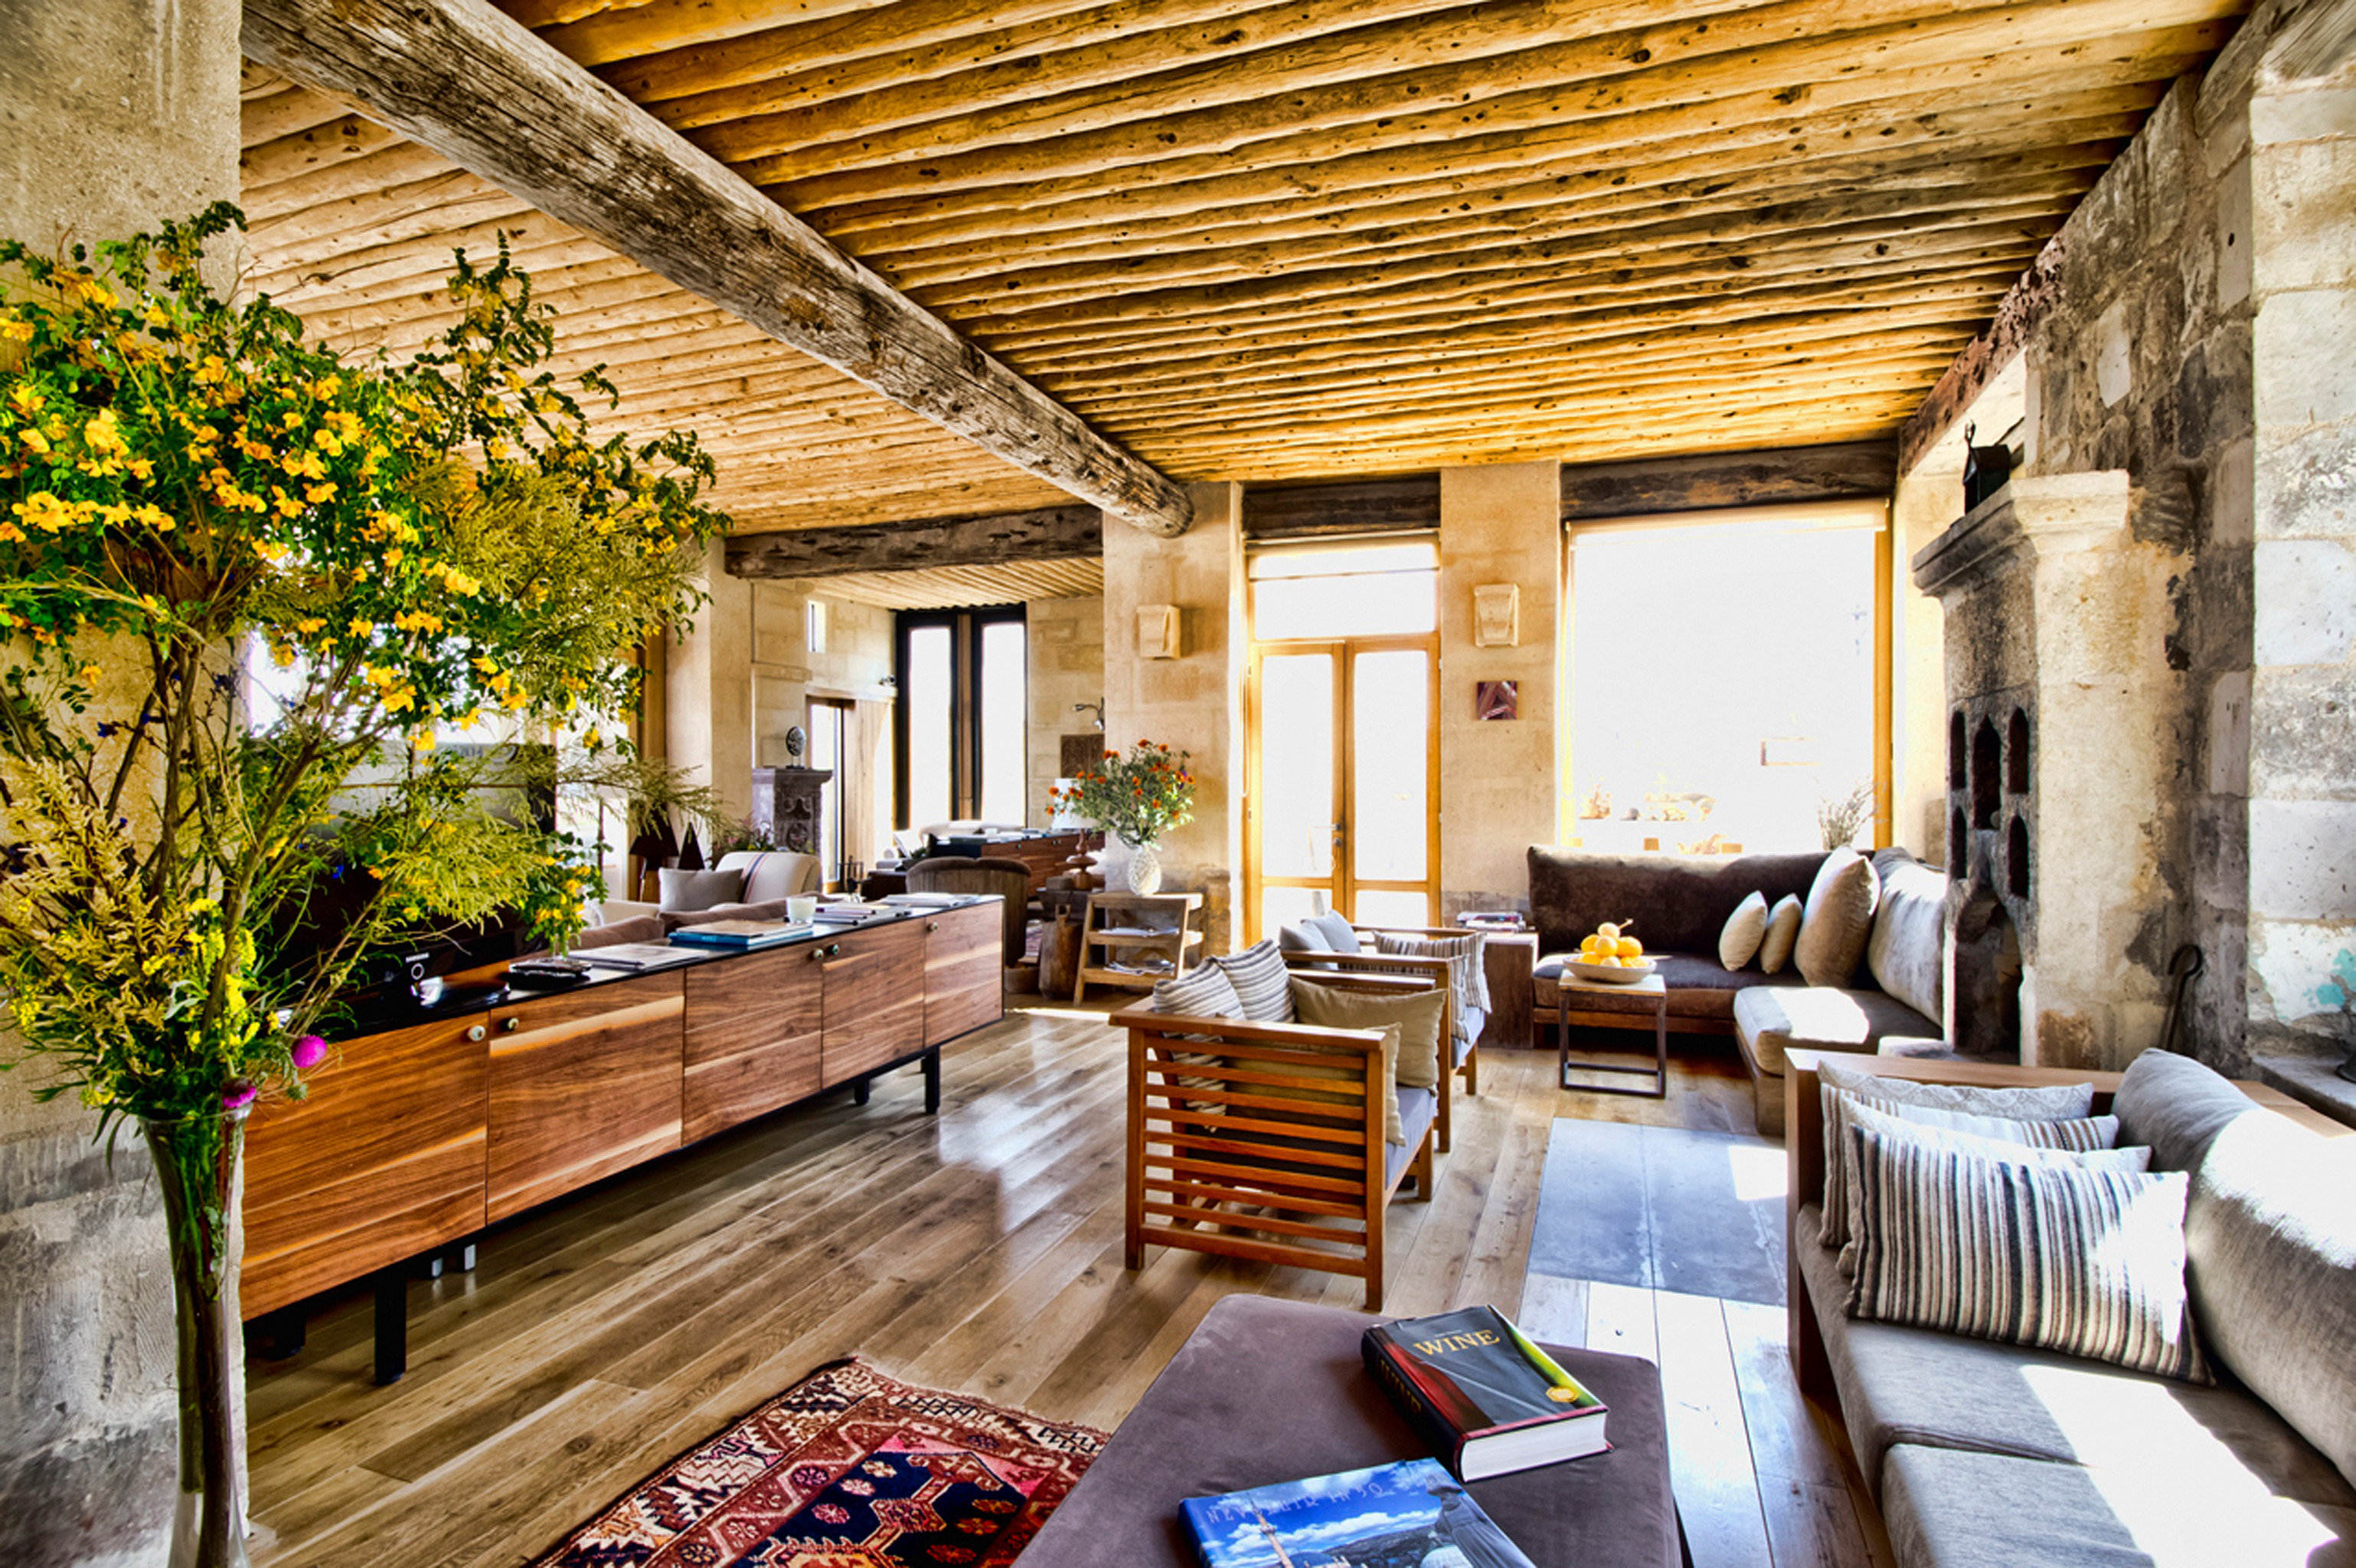 Eco Entertainment Lounge Luxury Resort Rustic sofa property house home log cabin cottage farmhouse porch Villa backyard living room outdoor structure stone